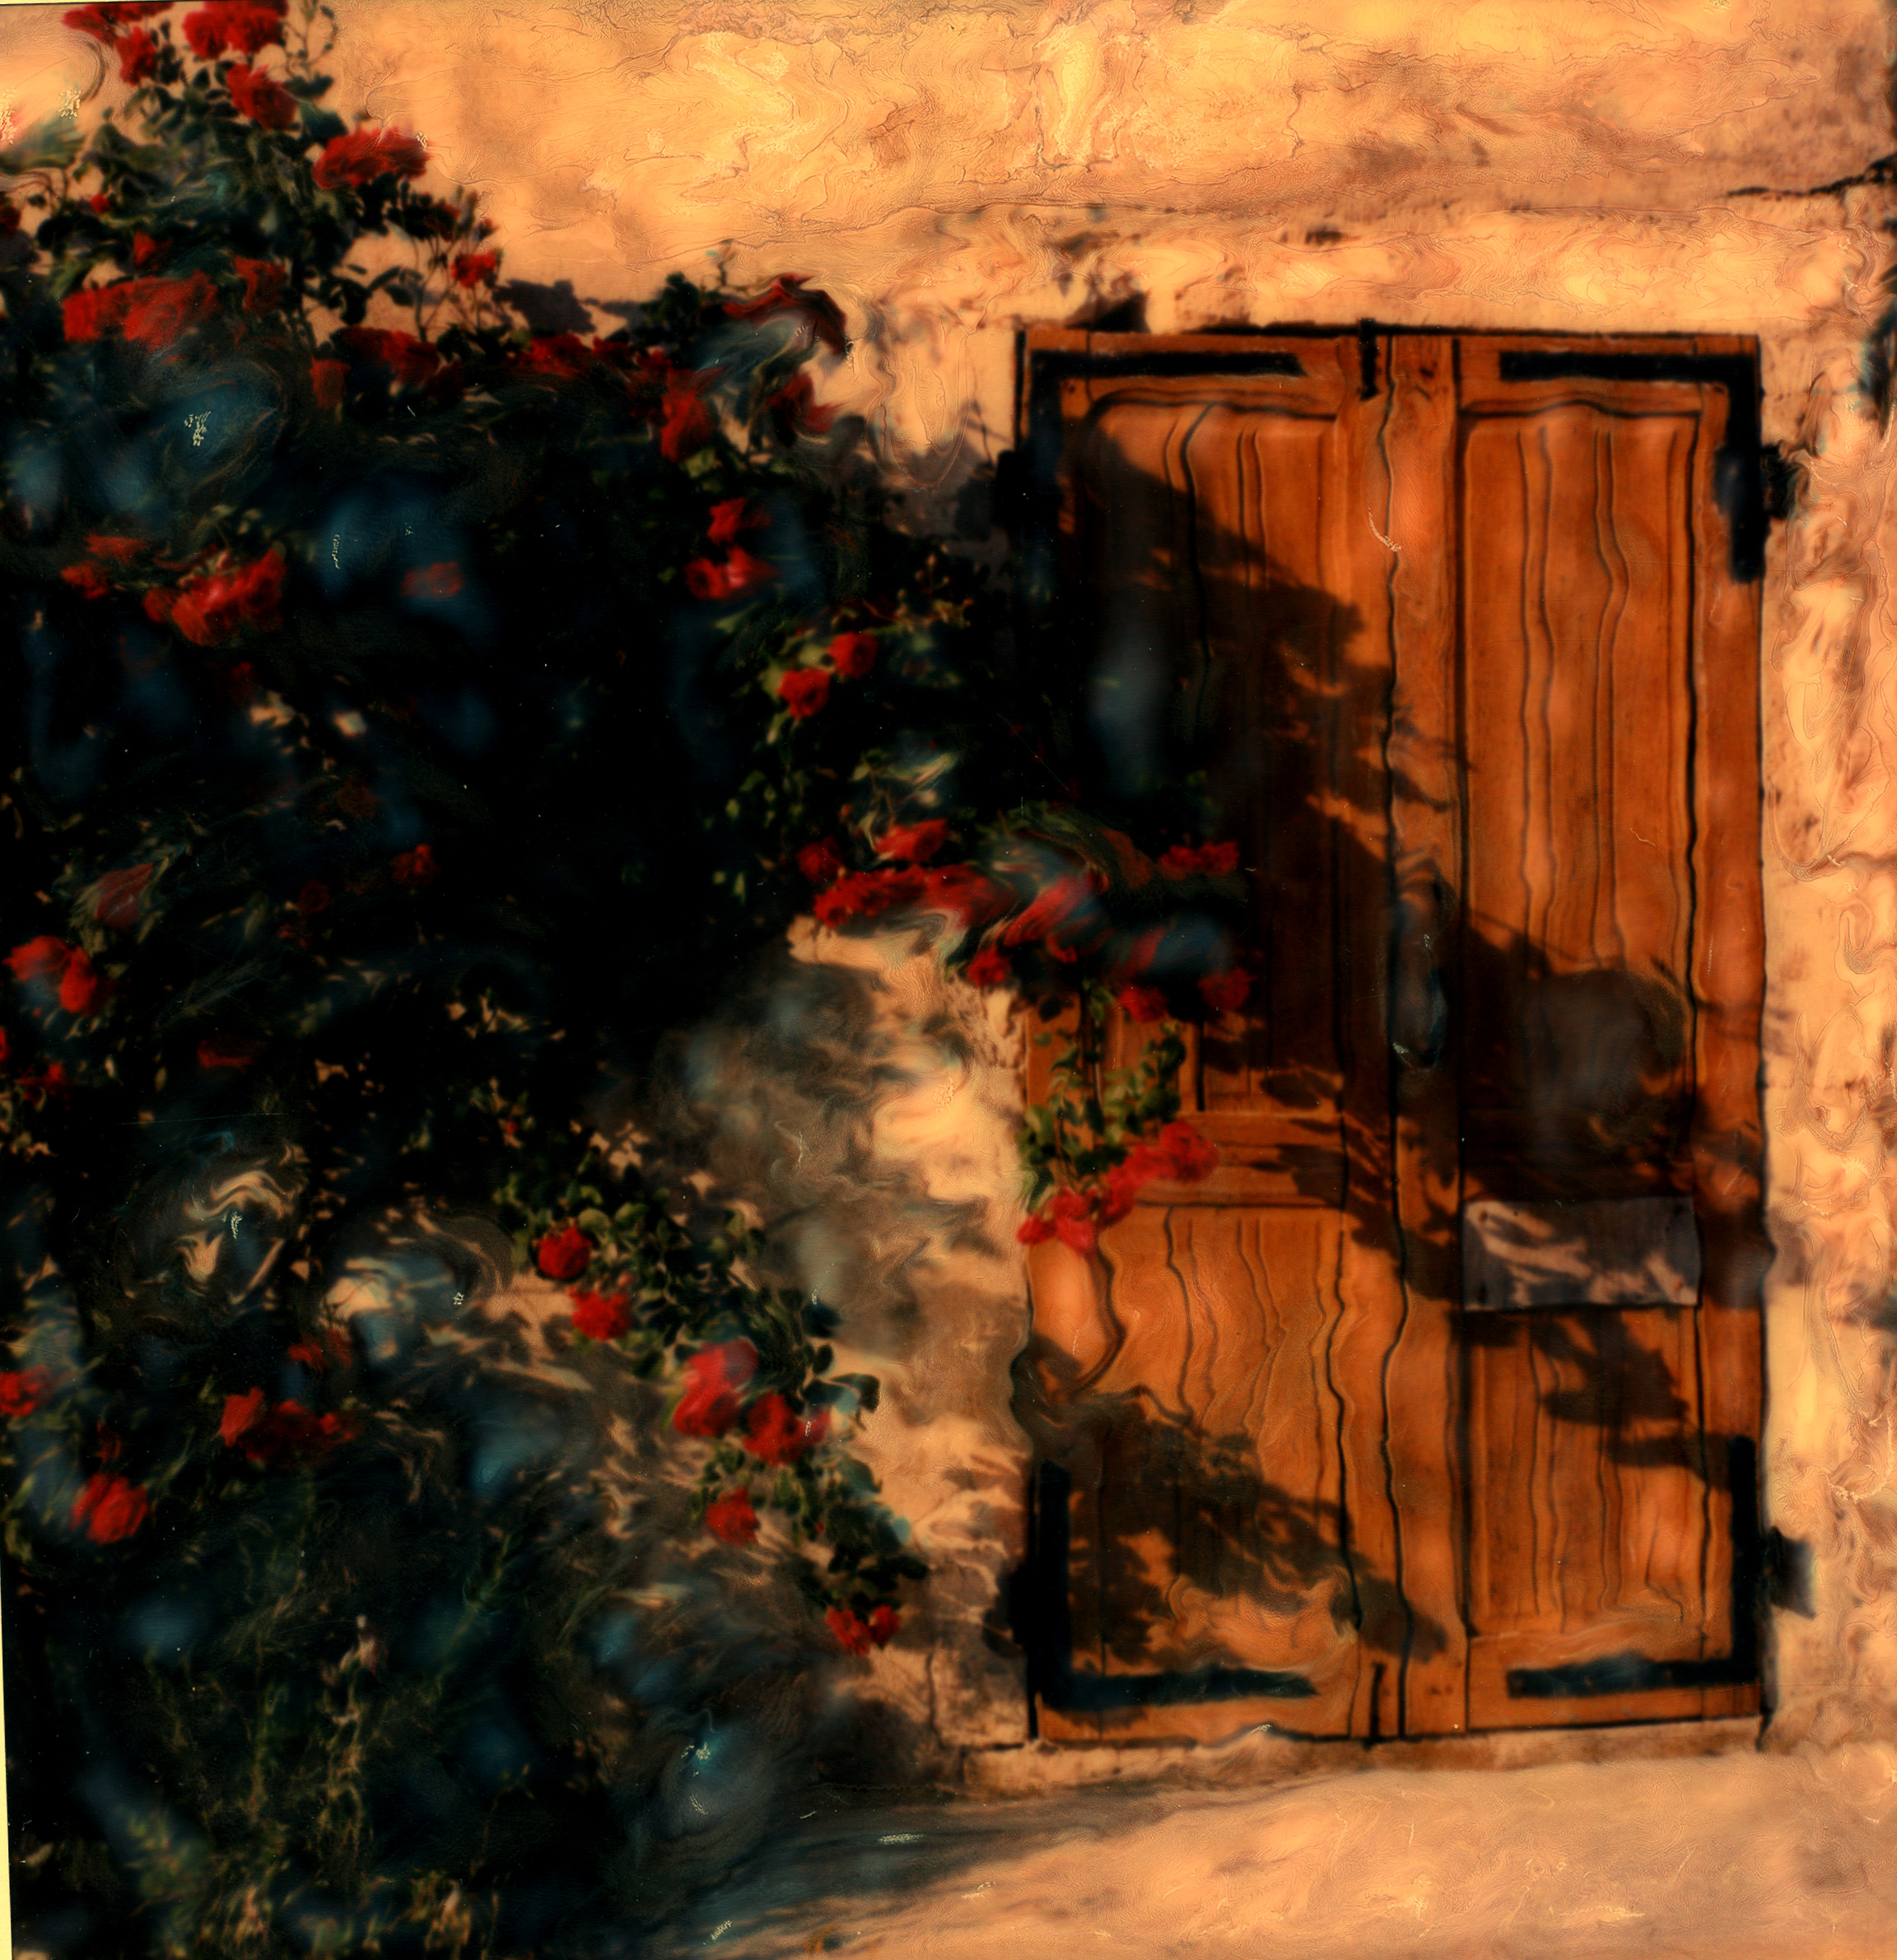 Doors ~ Anticipation or Apprehension?